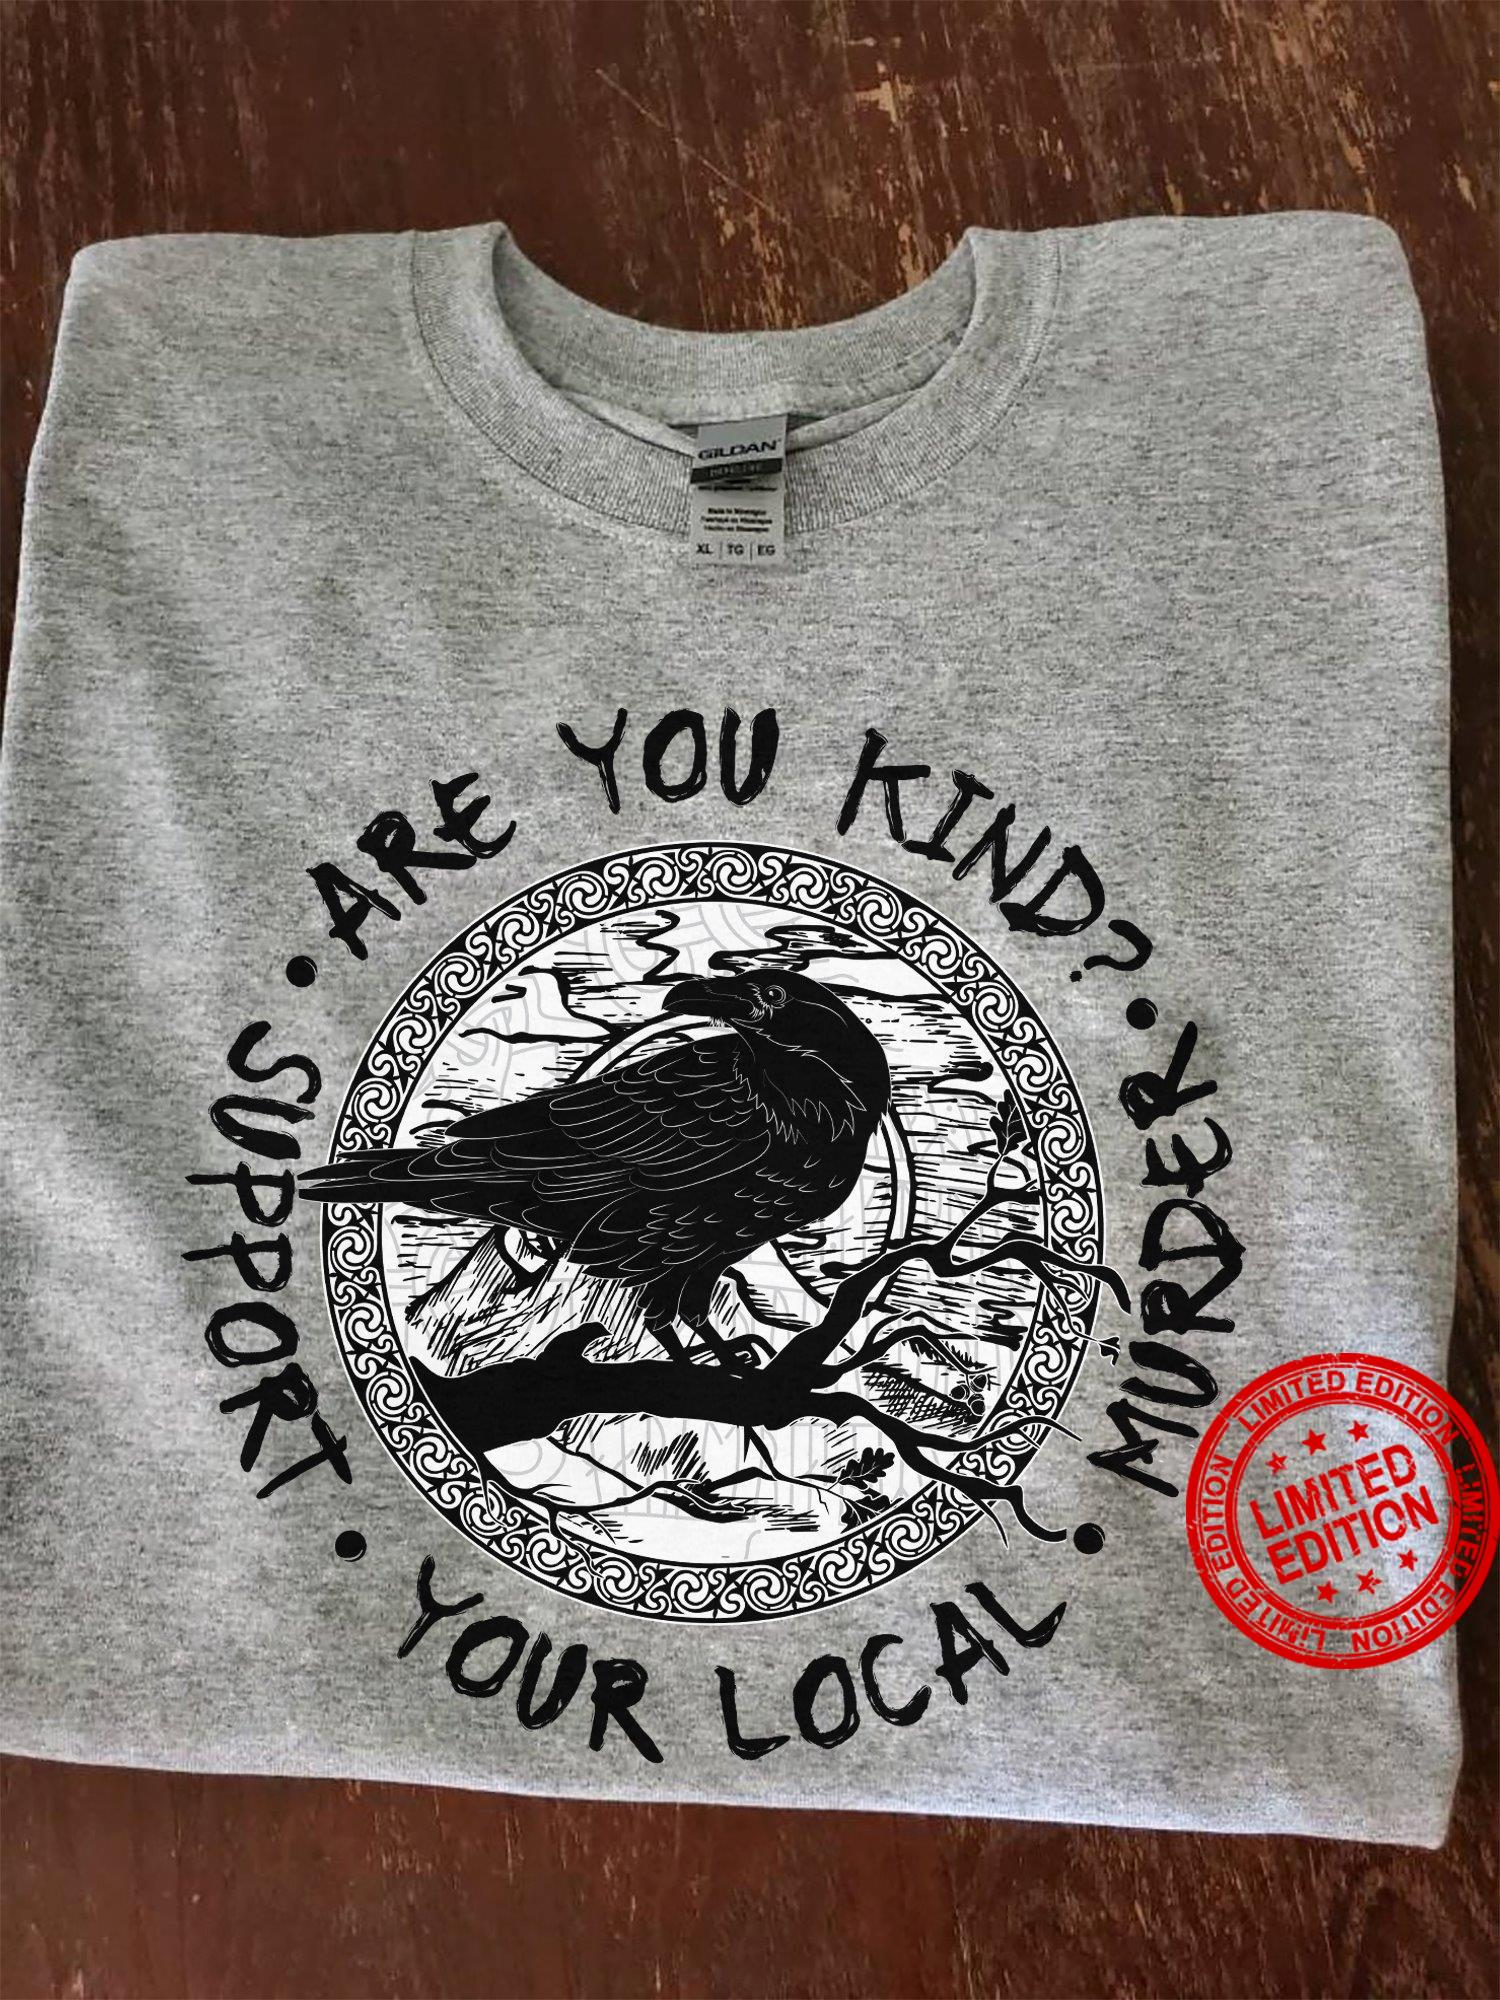 Support Are You Kind Murder Your Local Shirt